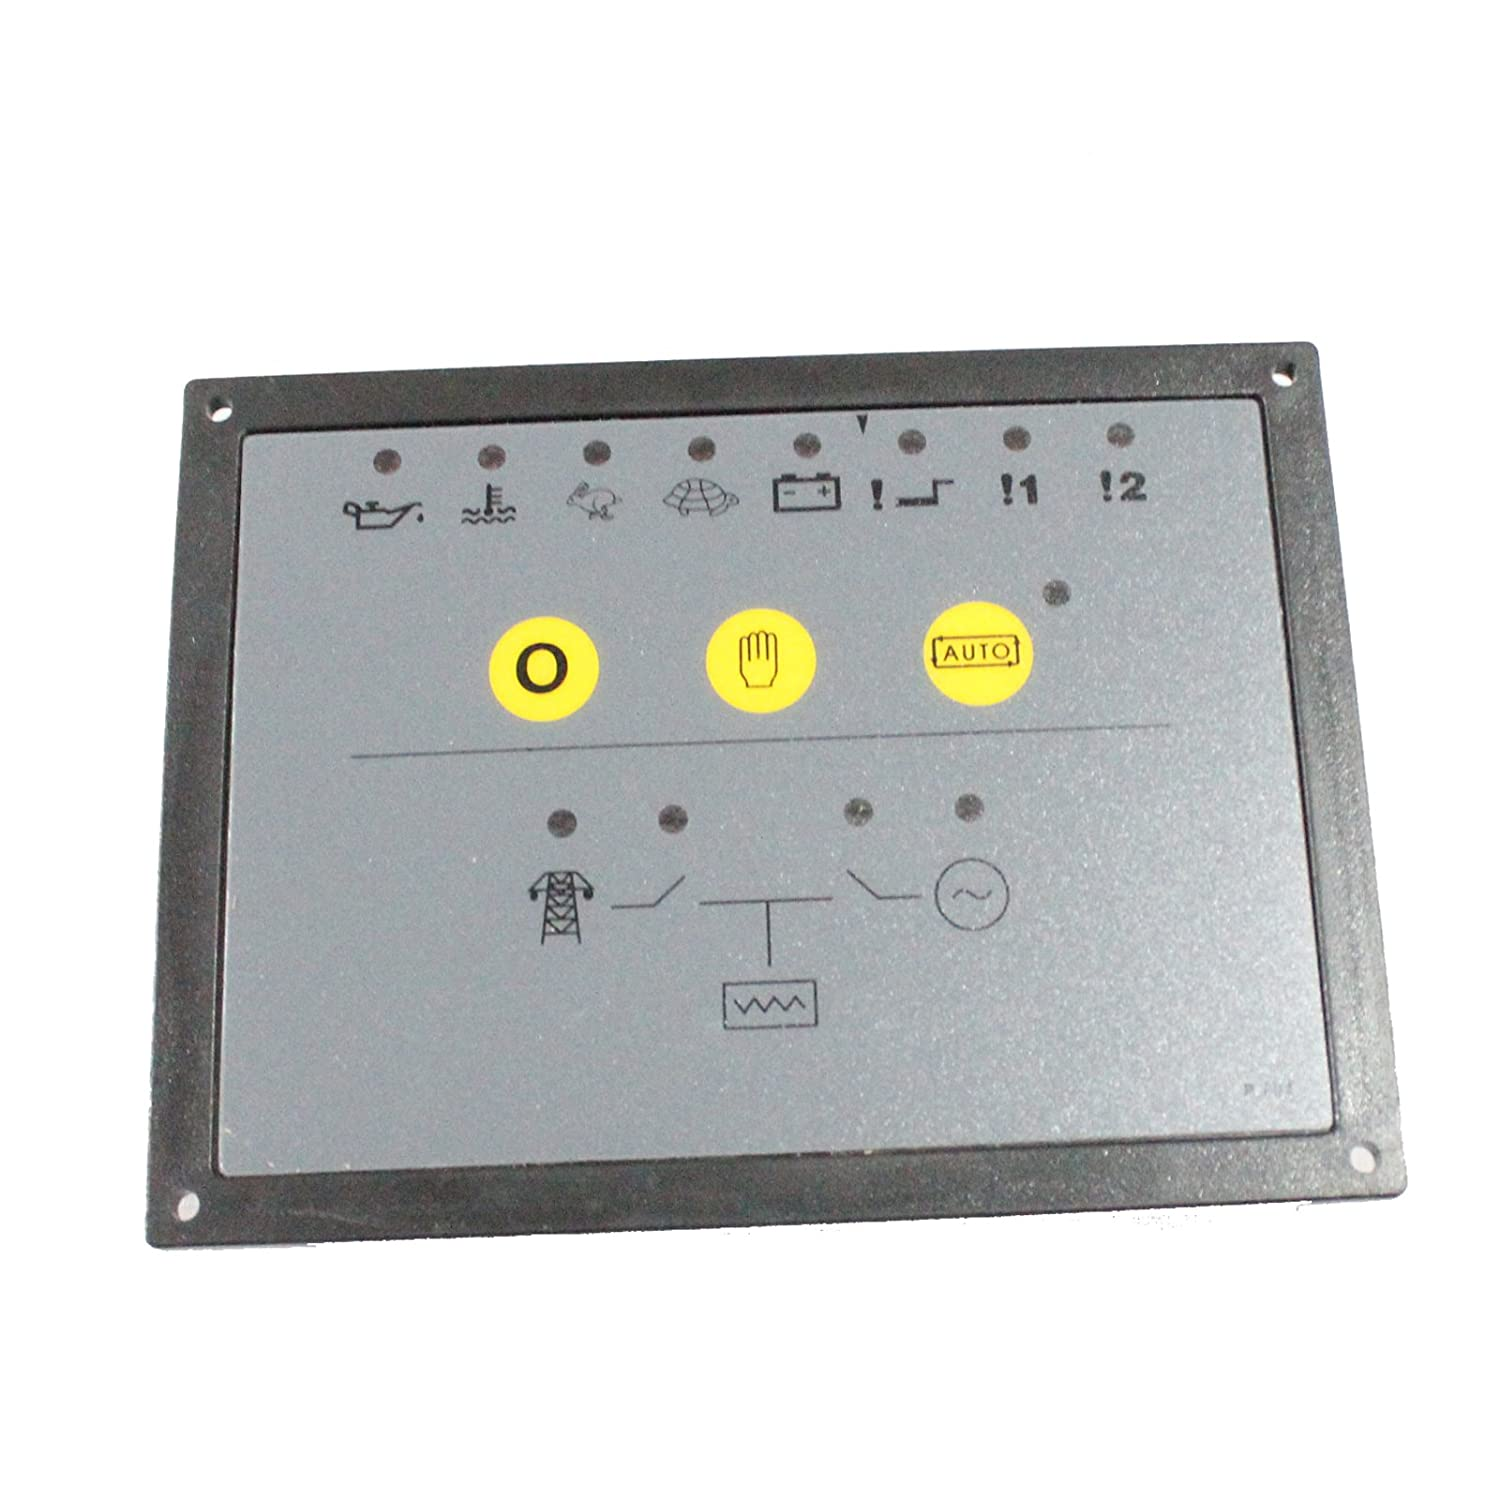 Friday Part DSE704 Electronics Controller Control Module Panel for Deep Sea With 1 Year Warranty